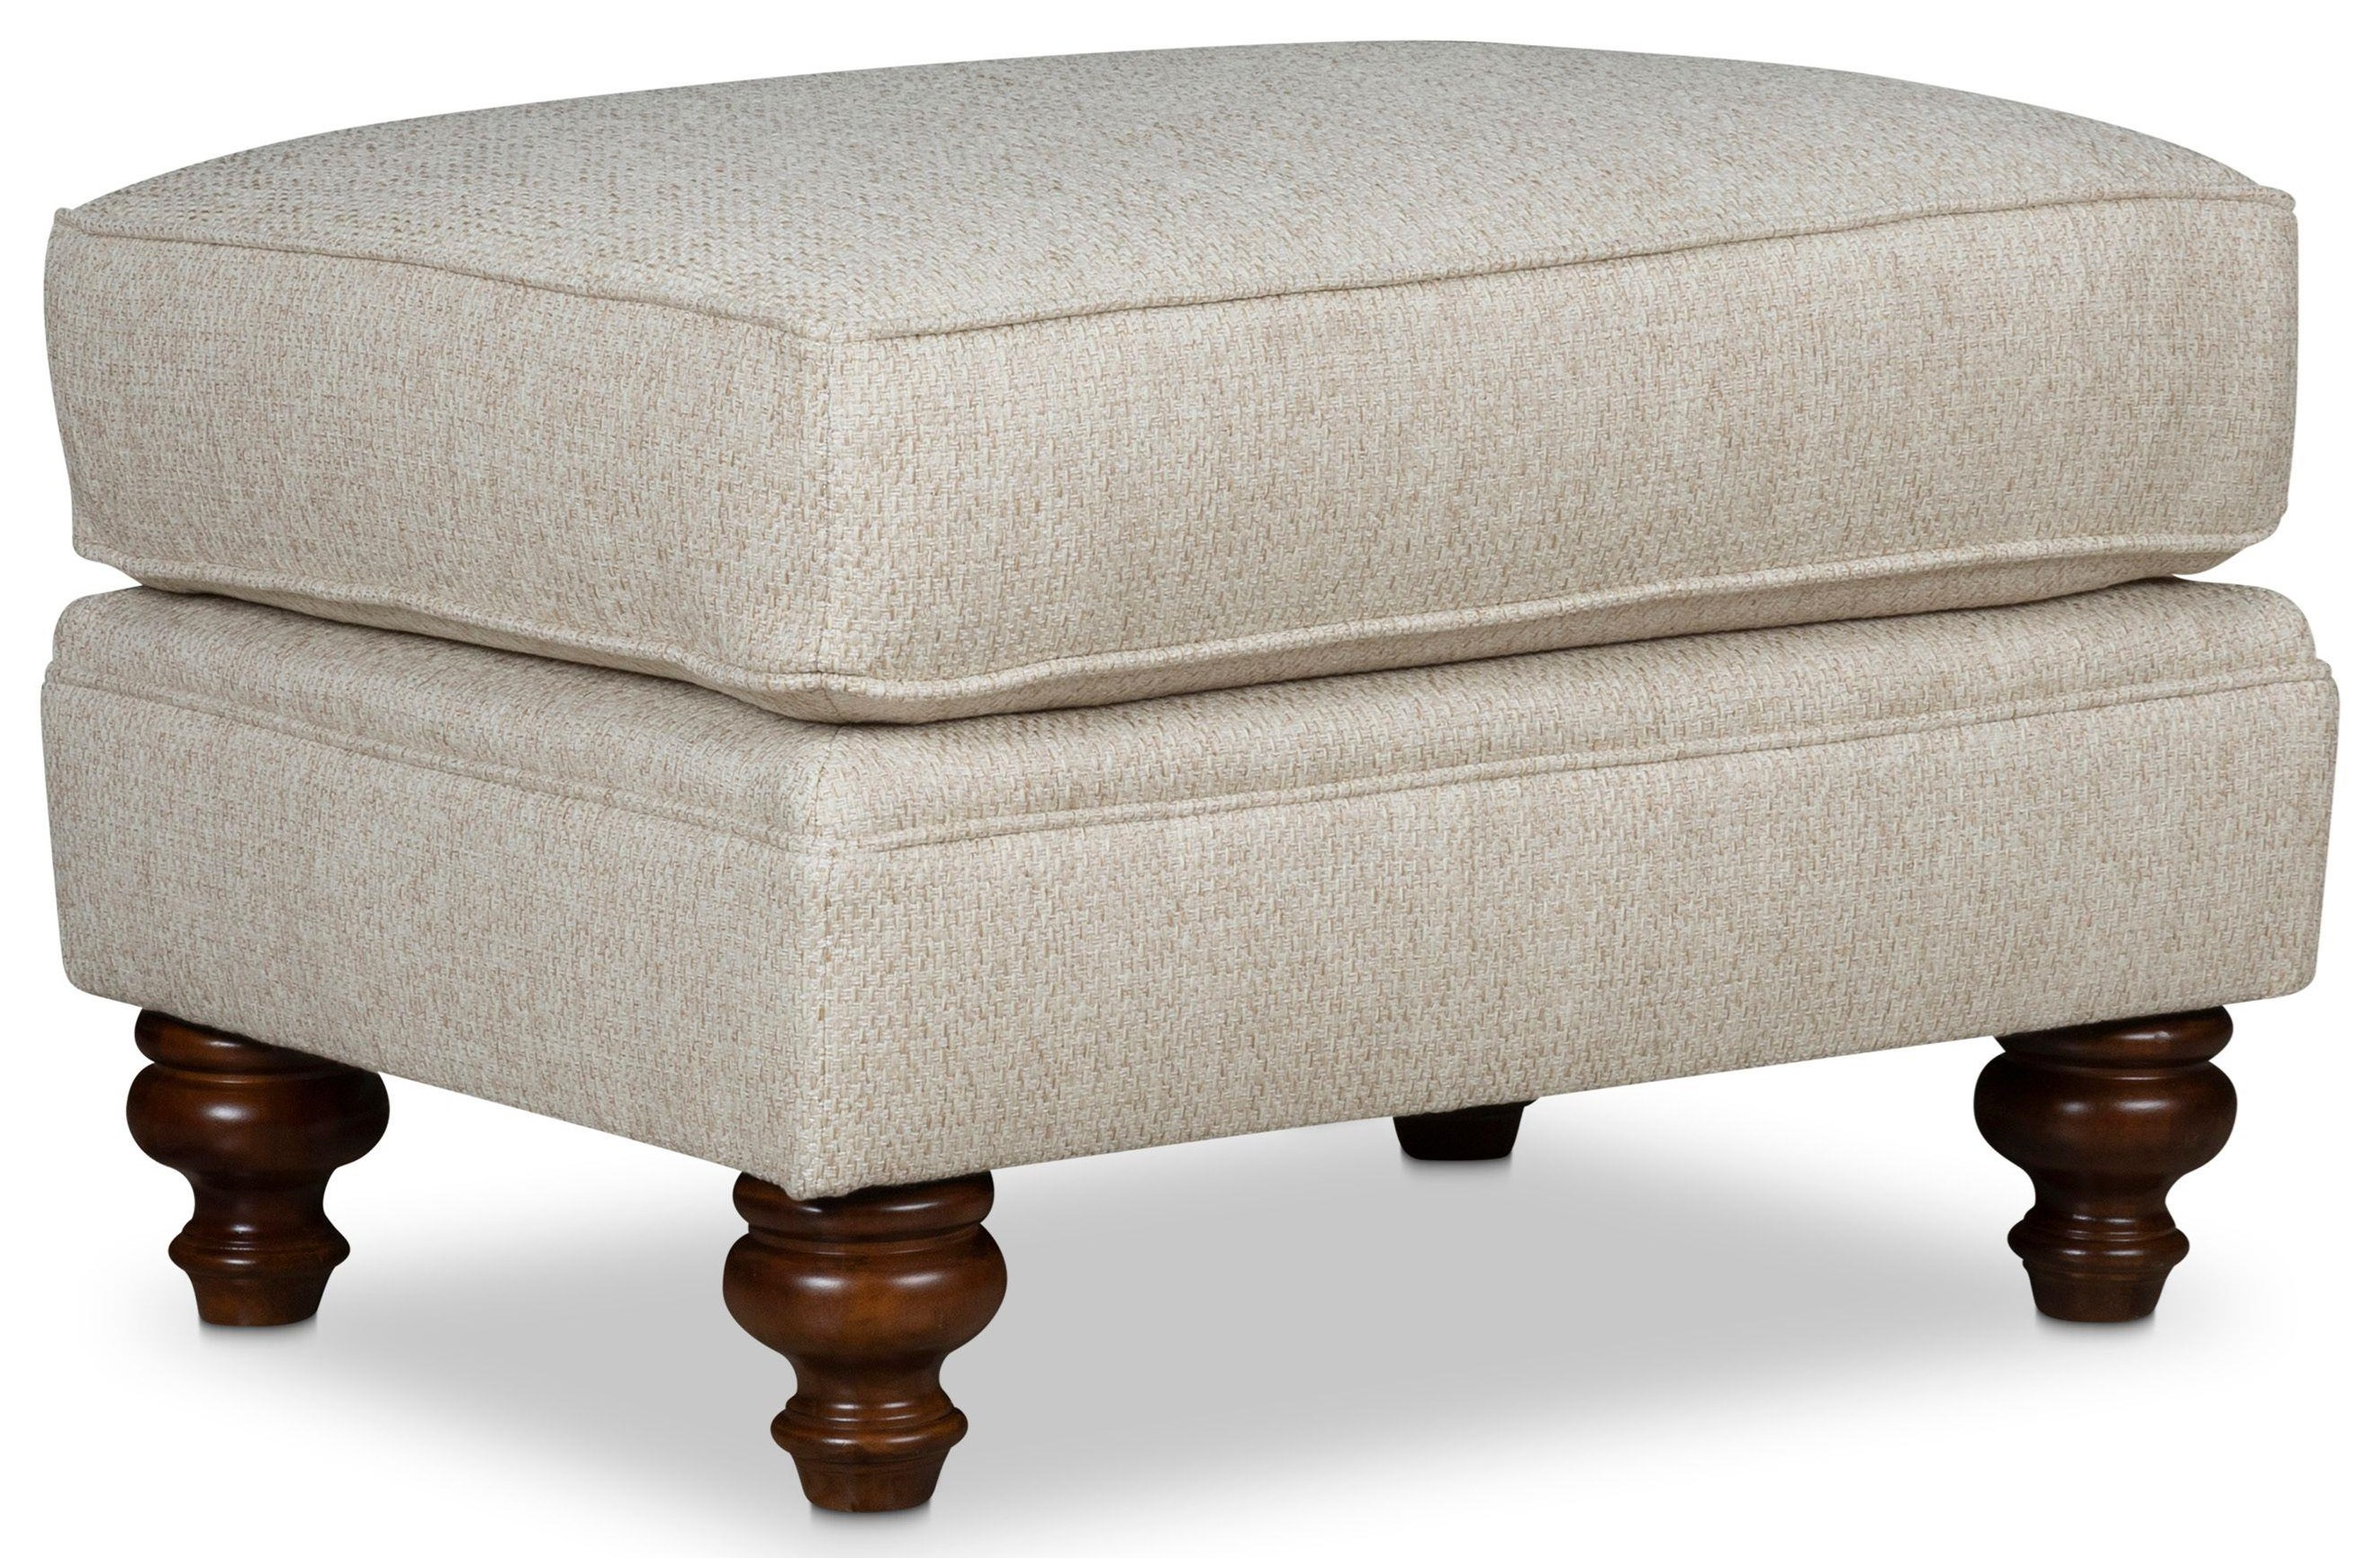 Larissa Ottoman by Stone & Leigh Furniture at Baer's Furniture